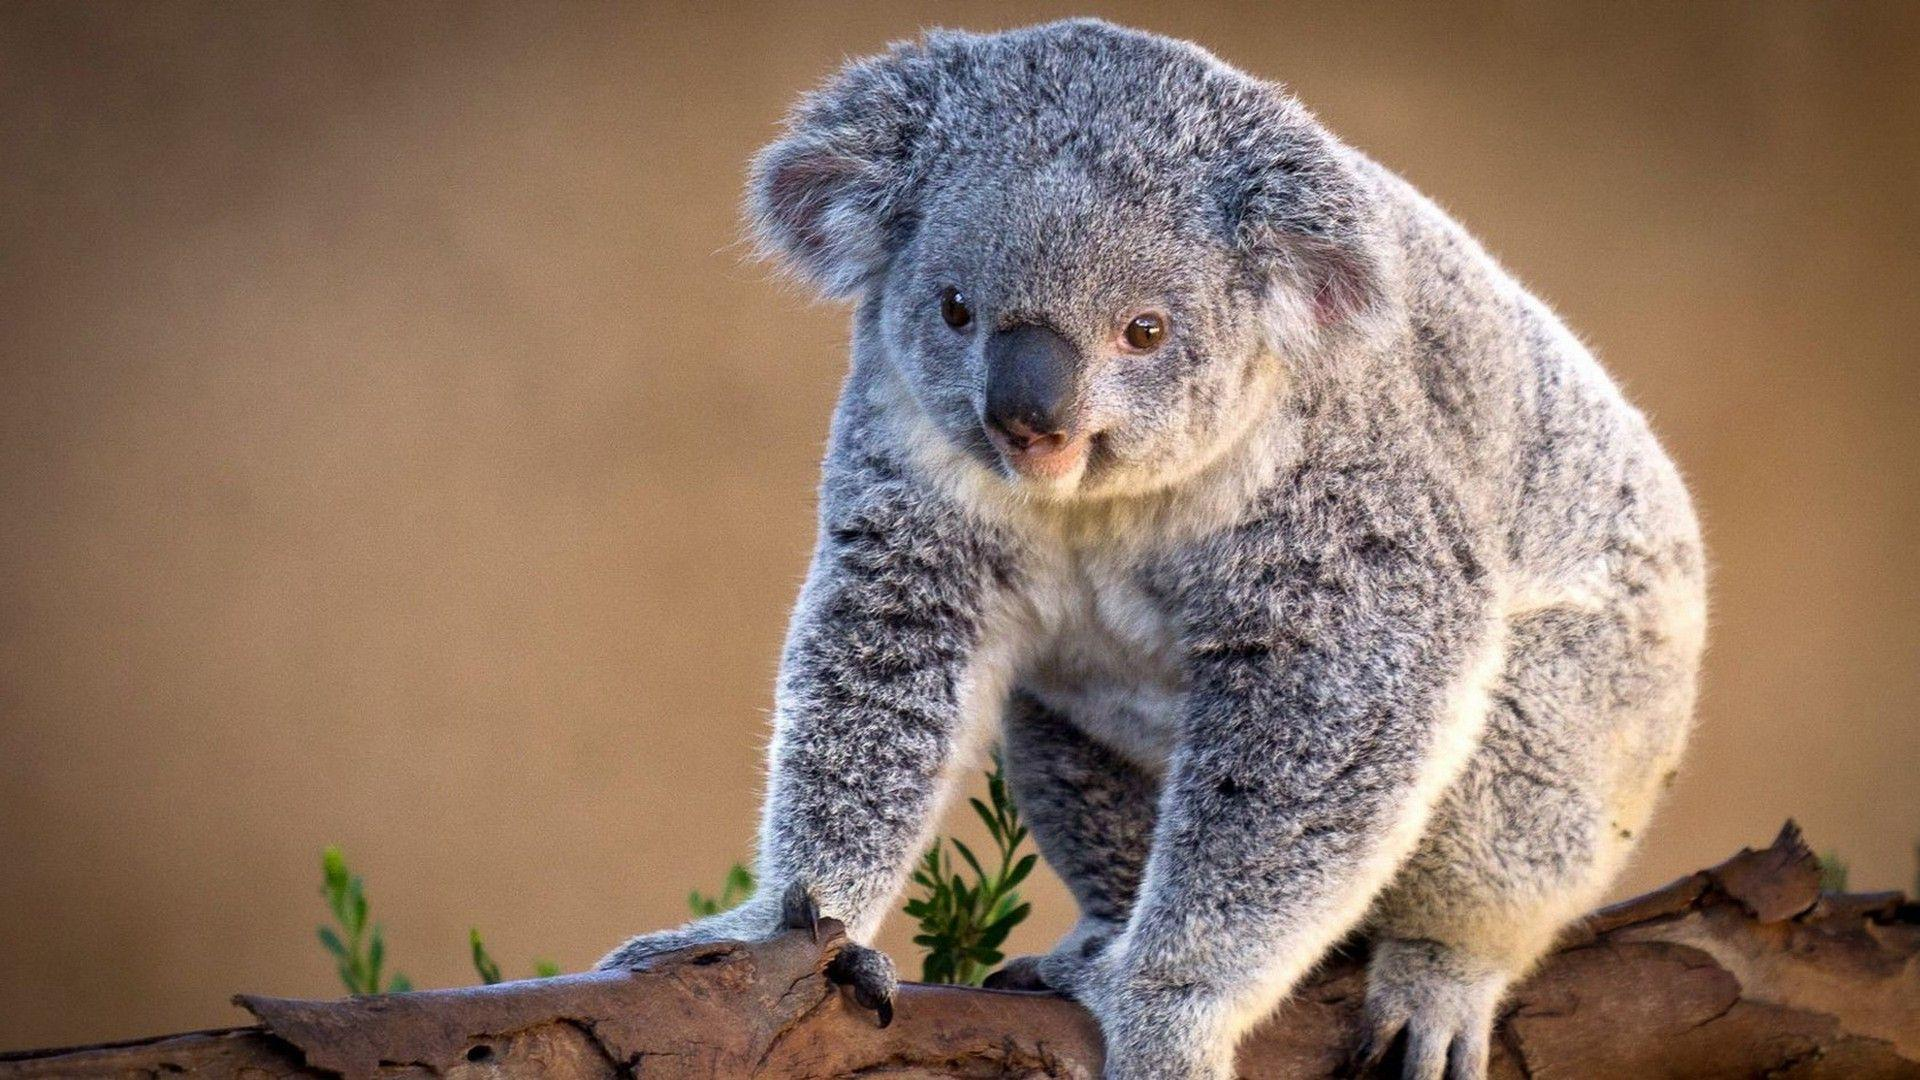 Download Koala Wallpaper 12955 1920x1080 px High Resolution ...